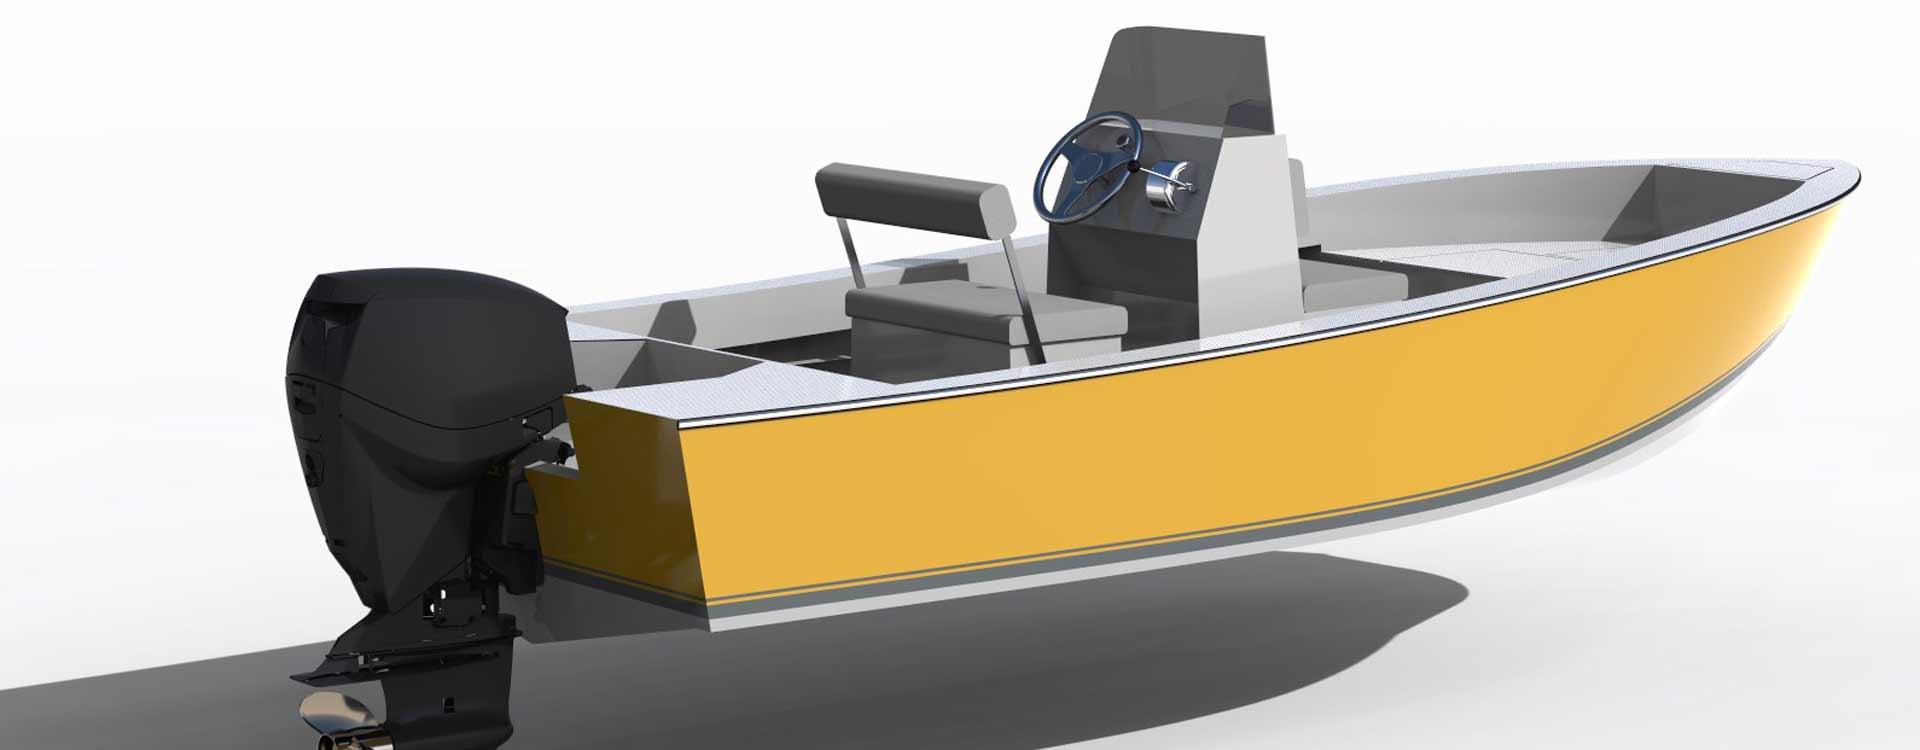 New Designs from BYD | Bedard Yacht Design